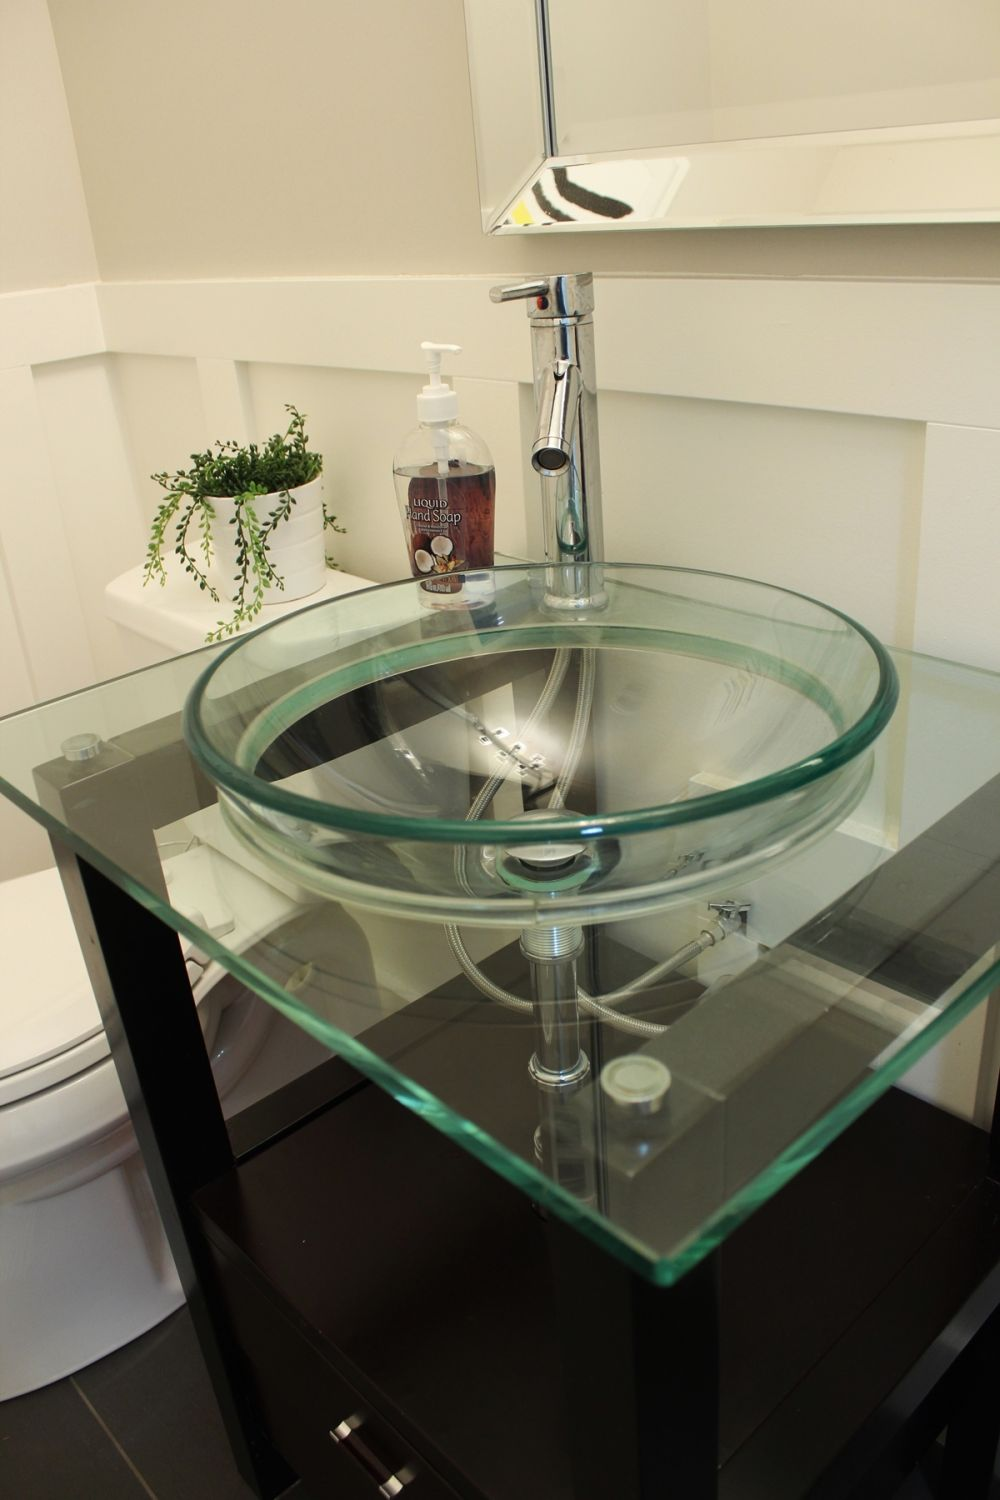 glass bathroom sink bowls how to decorate a bathroom without clutter 18463